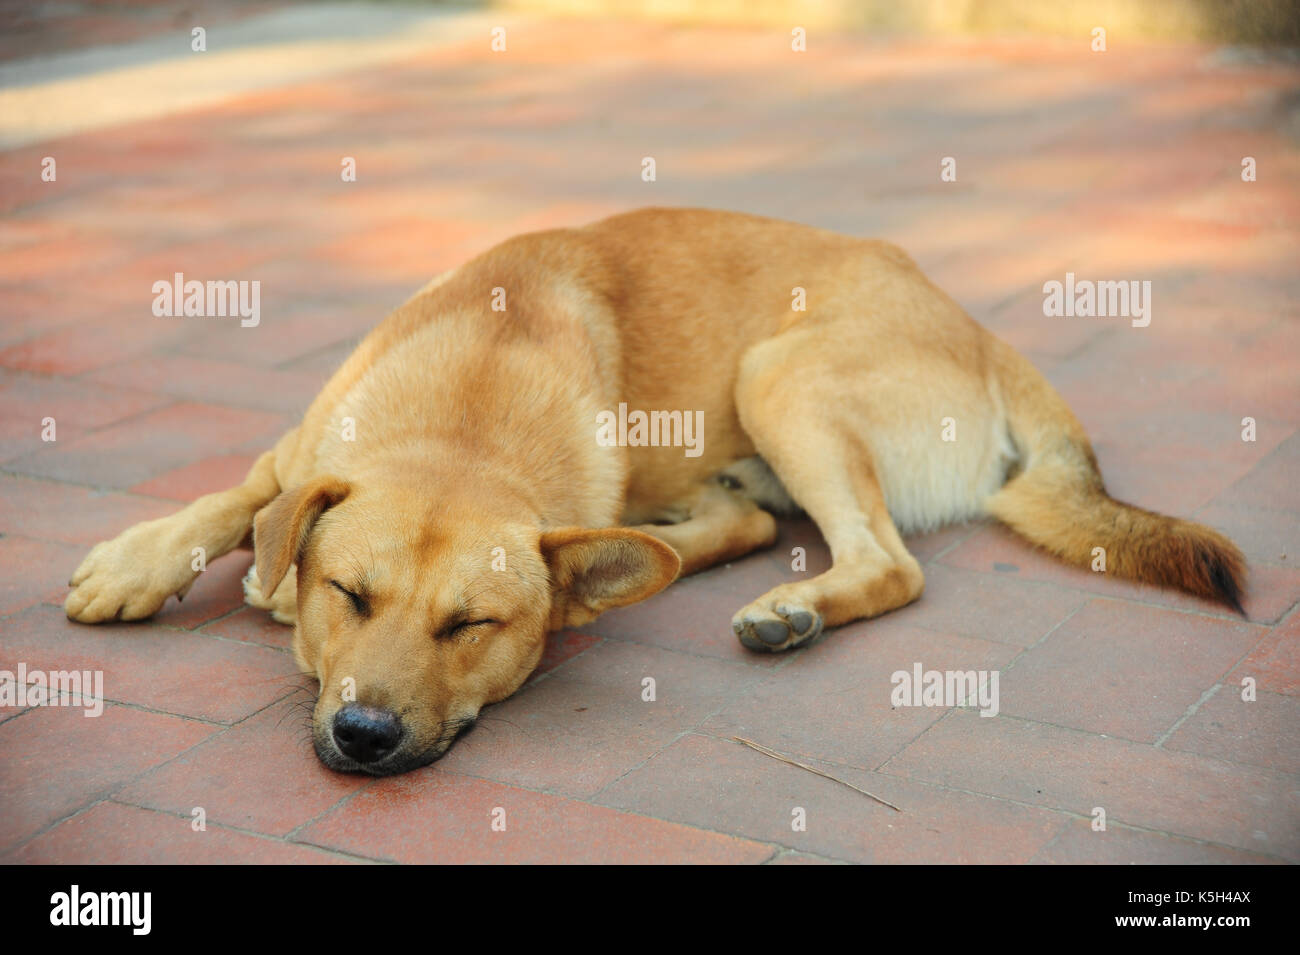 Dog sleeping on the floor. - Stock Image